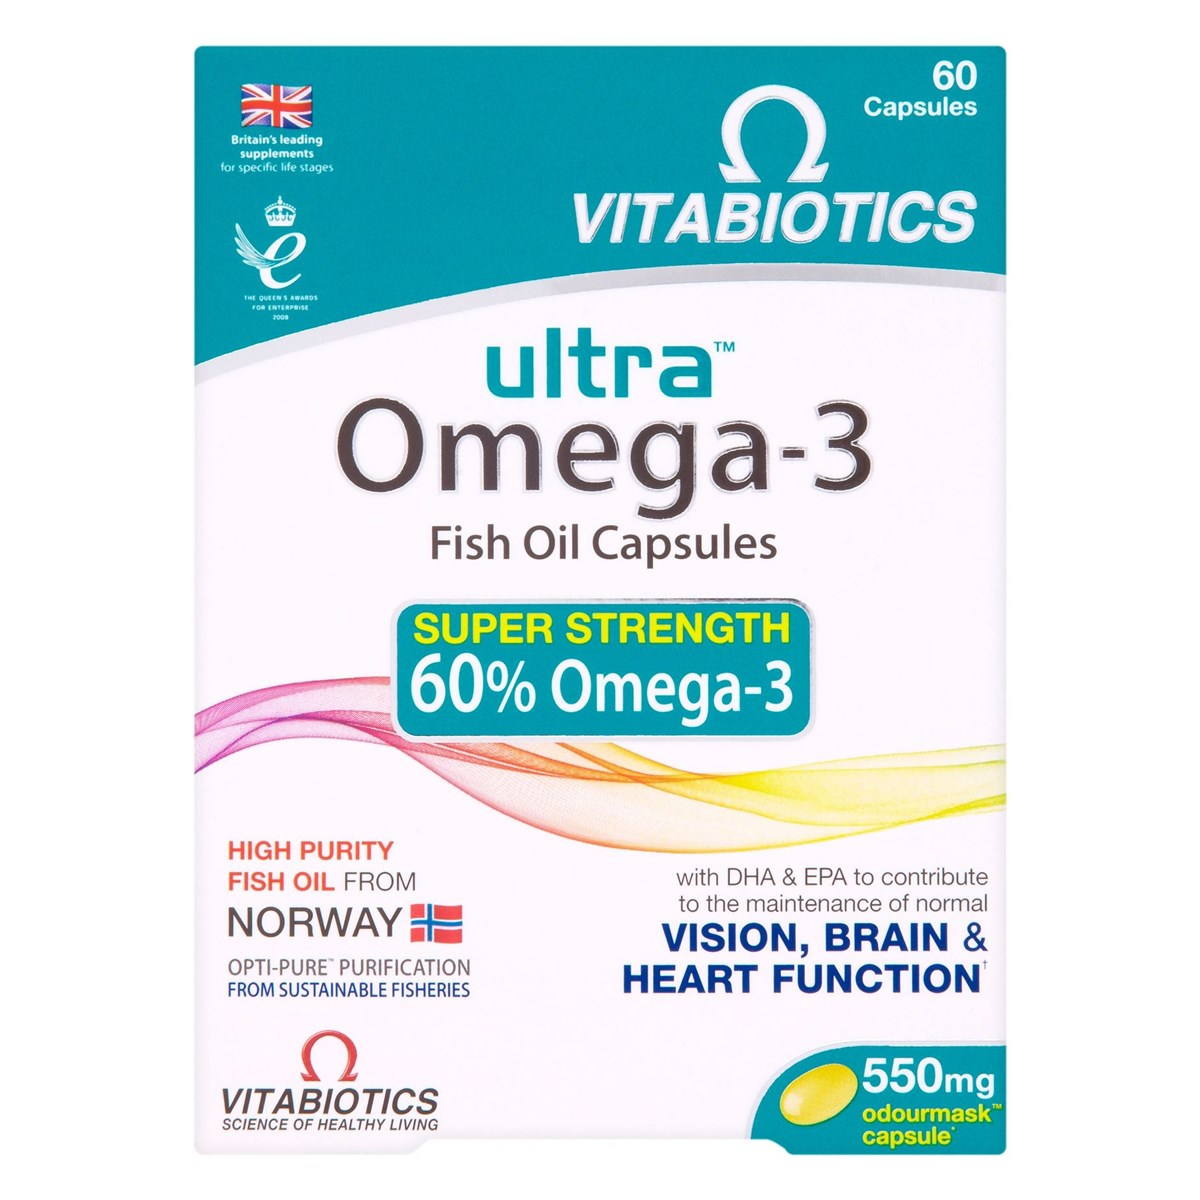 Vitabiotics Ultra Omega-3 Fish Oil Capsules